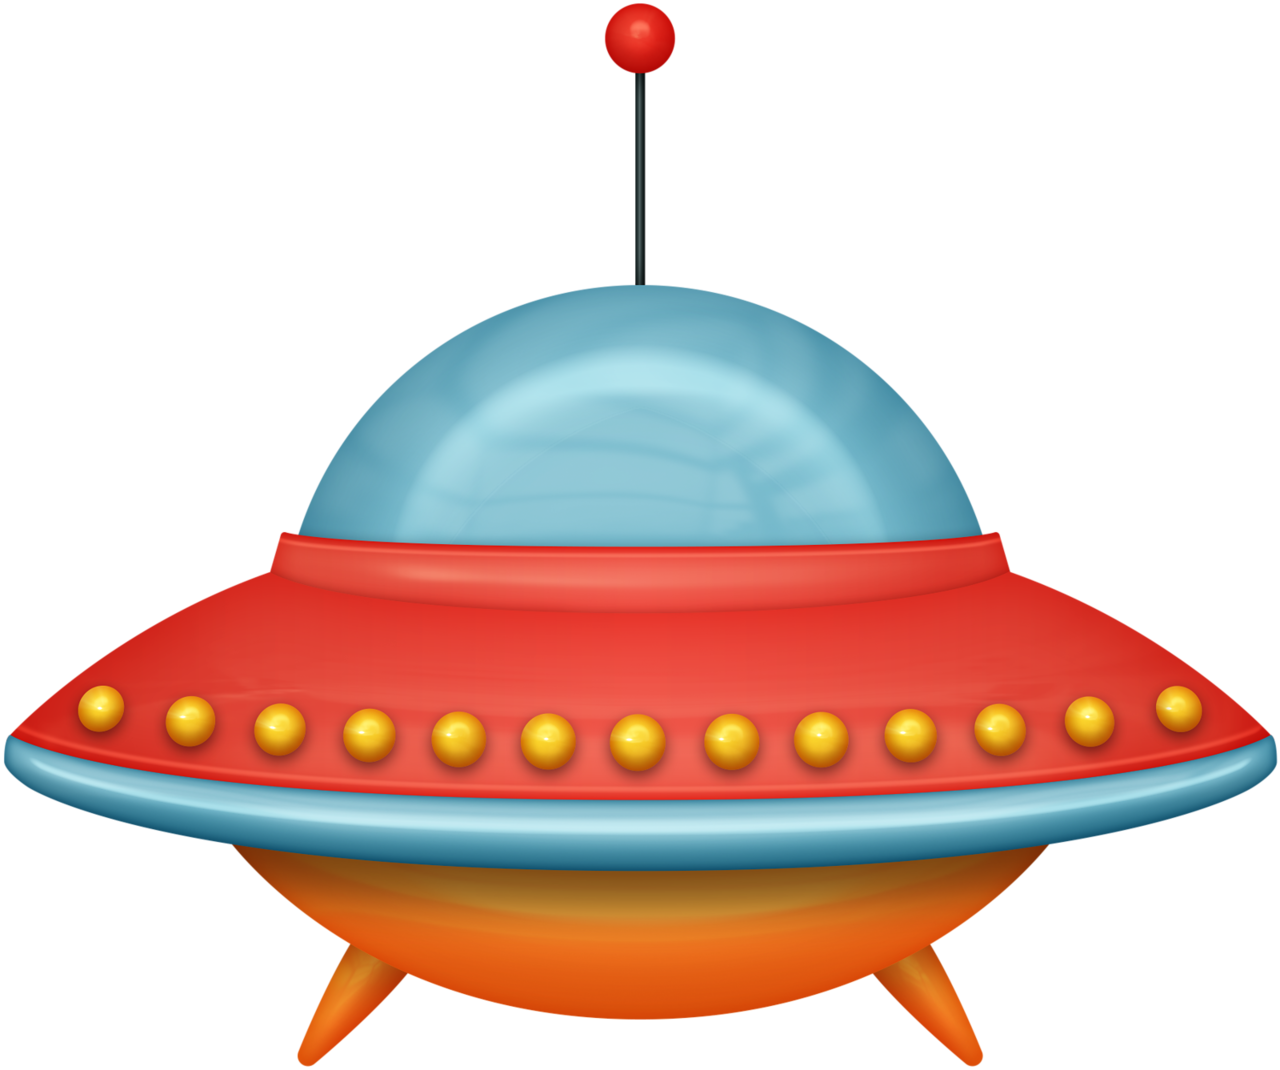 Galaxy clipart space exploration. Pin by kim heiser